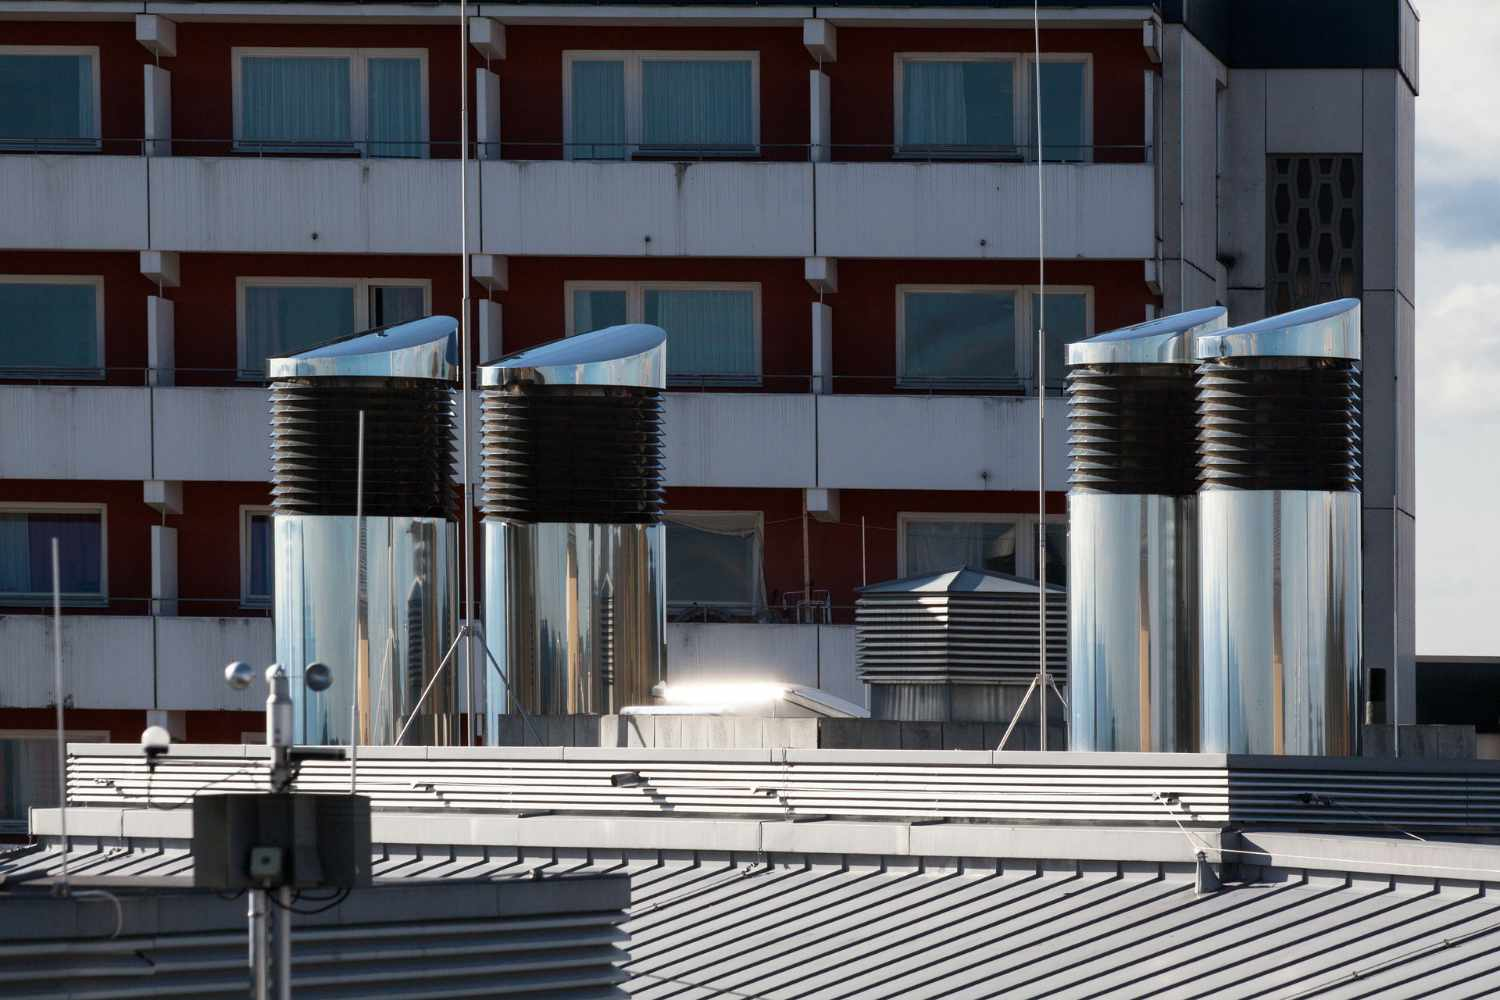 Ventilation chimneys on a roof